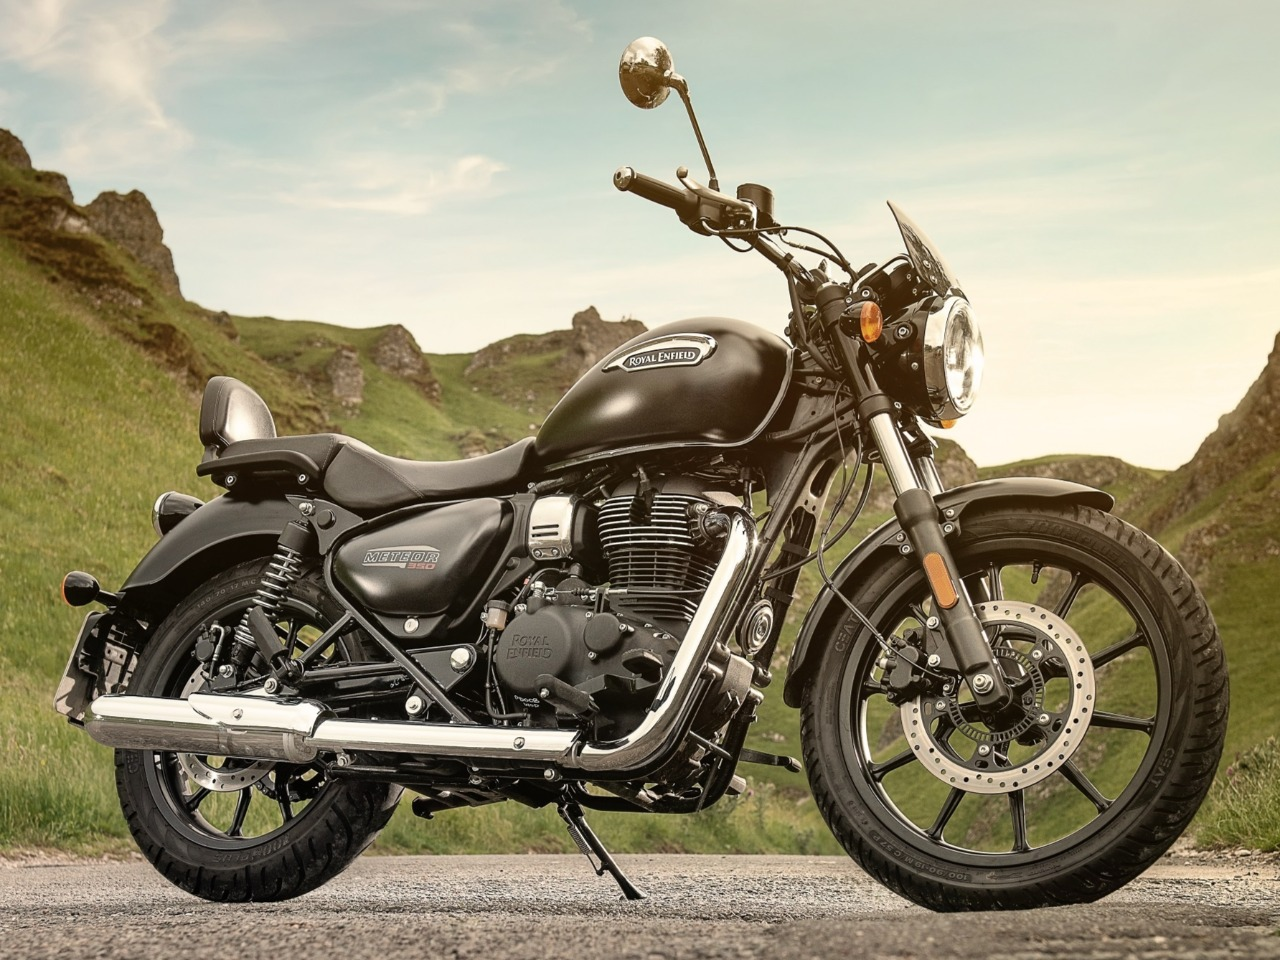 2. Royal Enfield Meteor